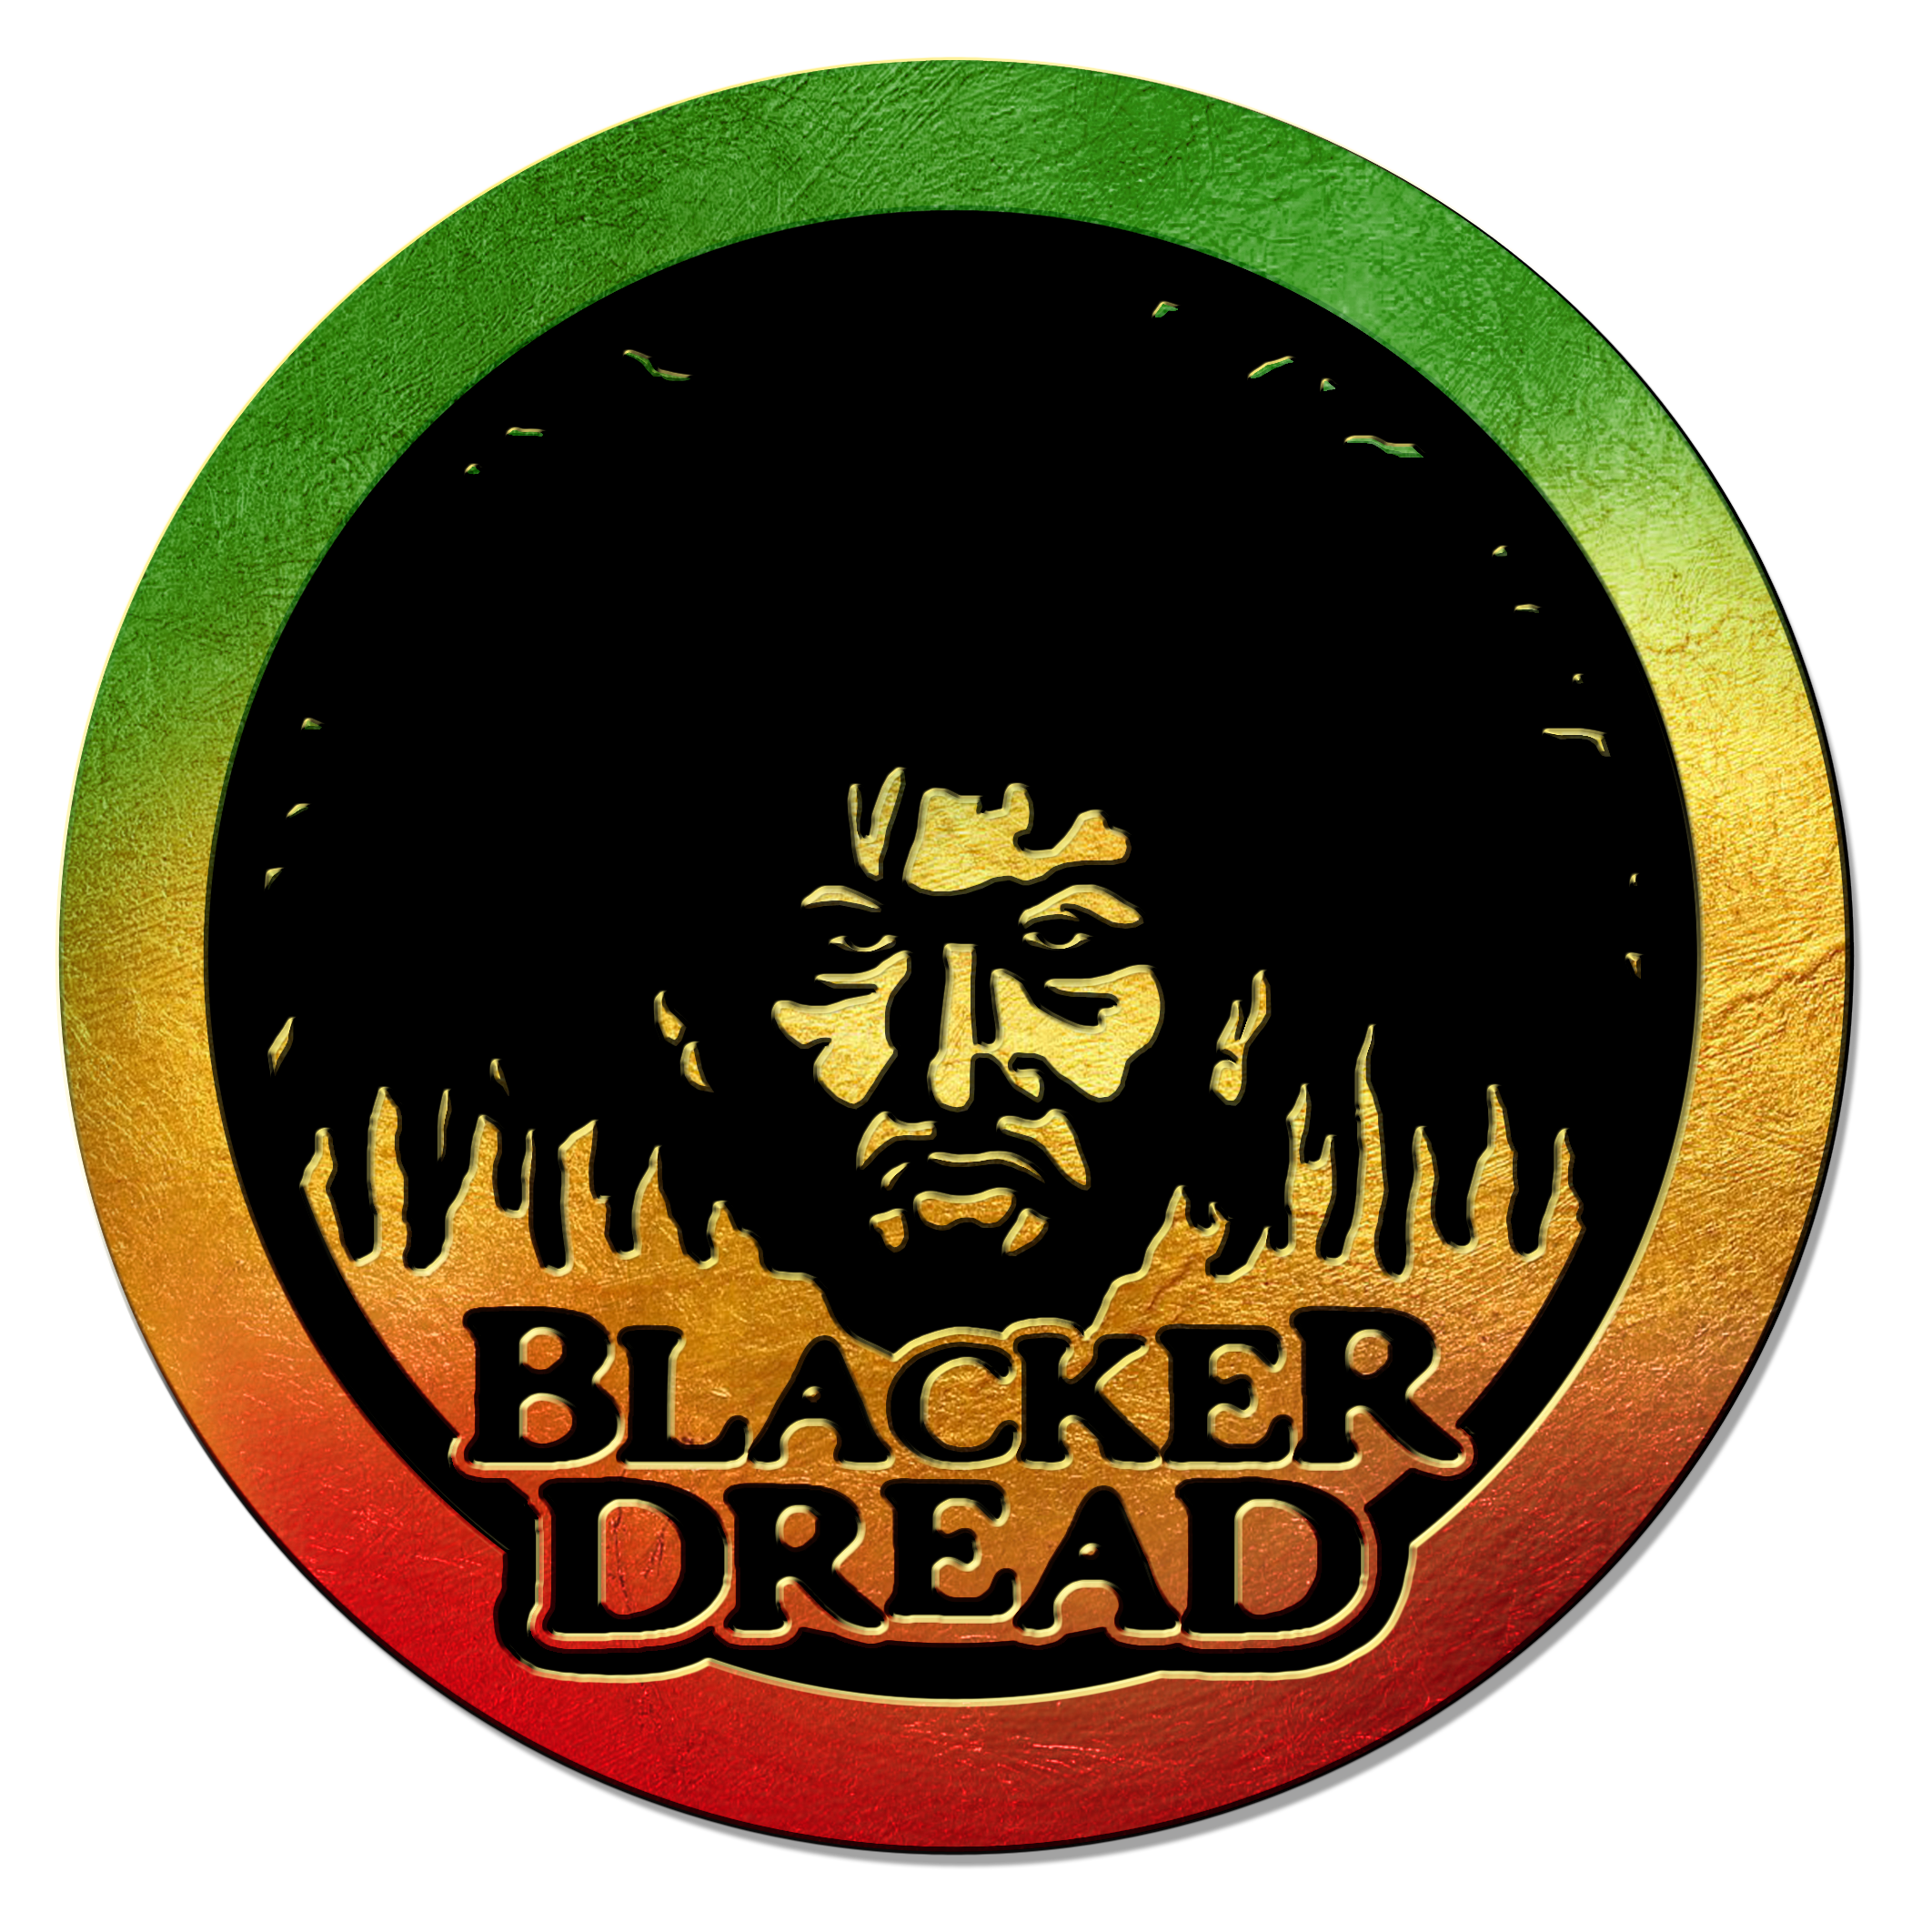 Blacker Dread Merch